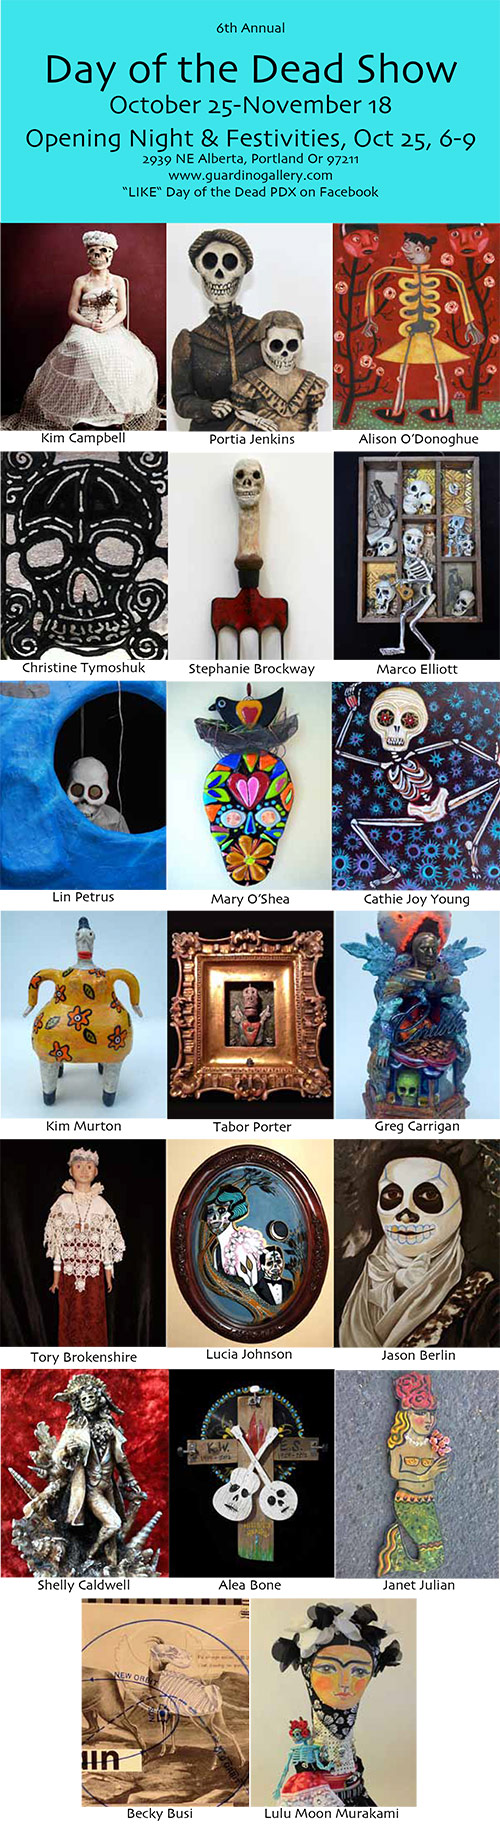 Guardino Gallery - Day of the Dead Show - October 25, 2012 - Artists.